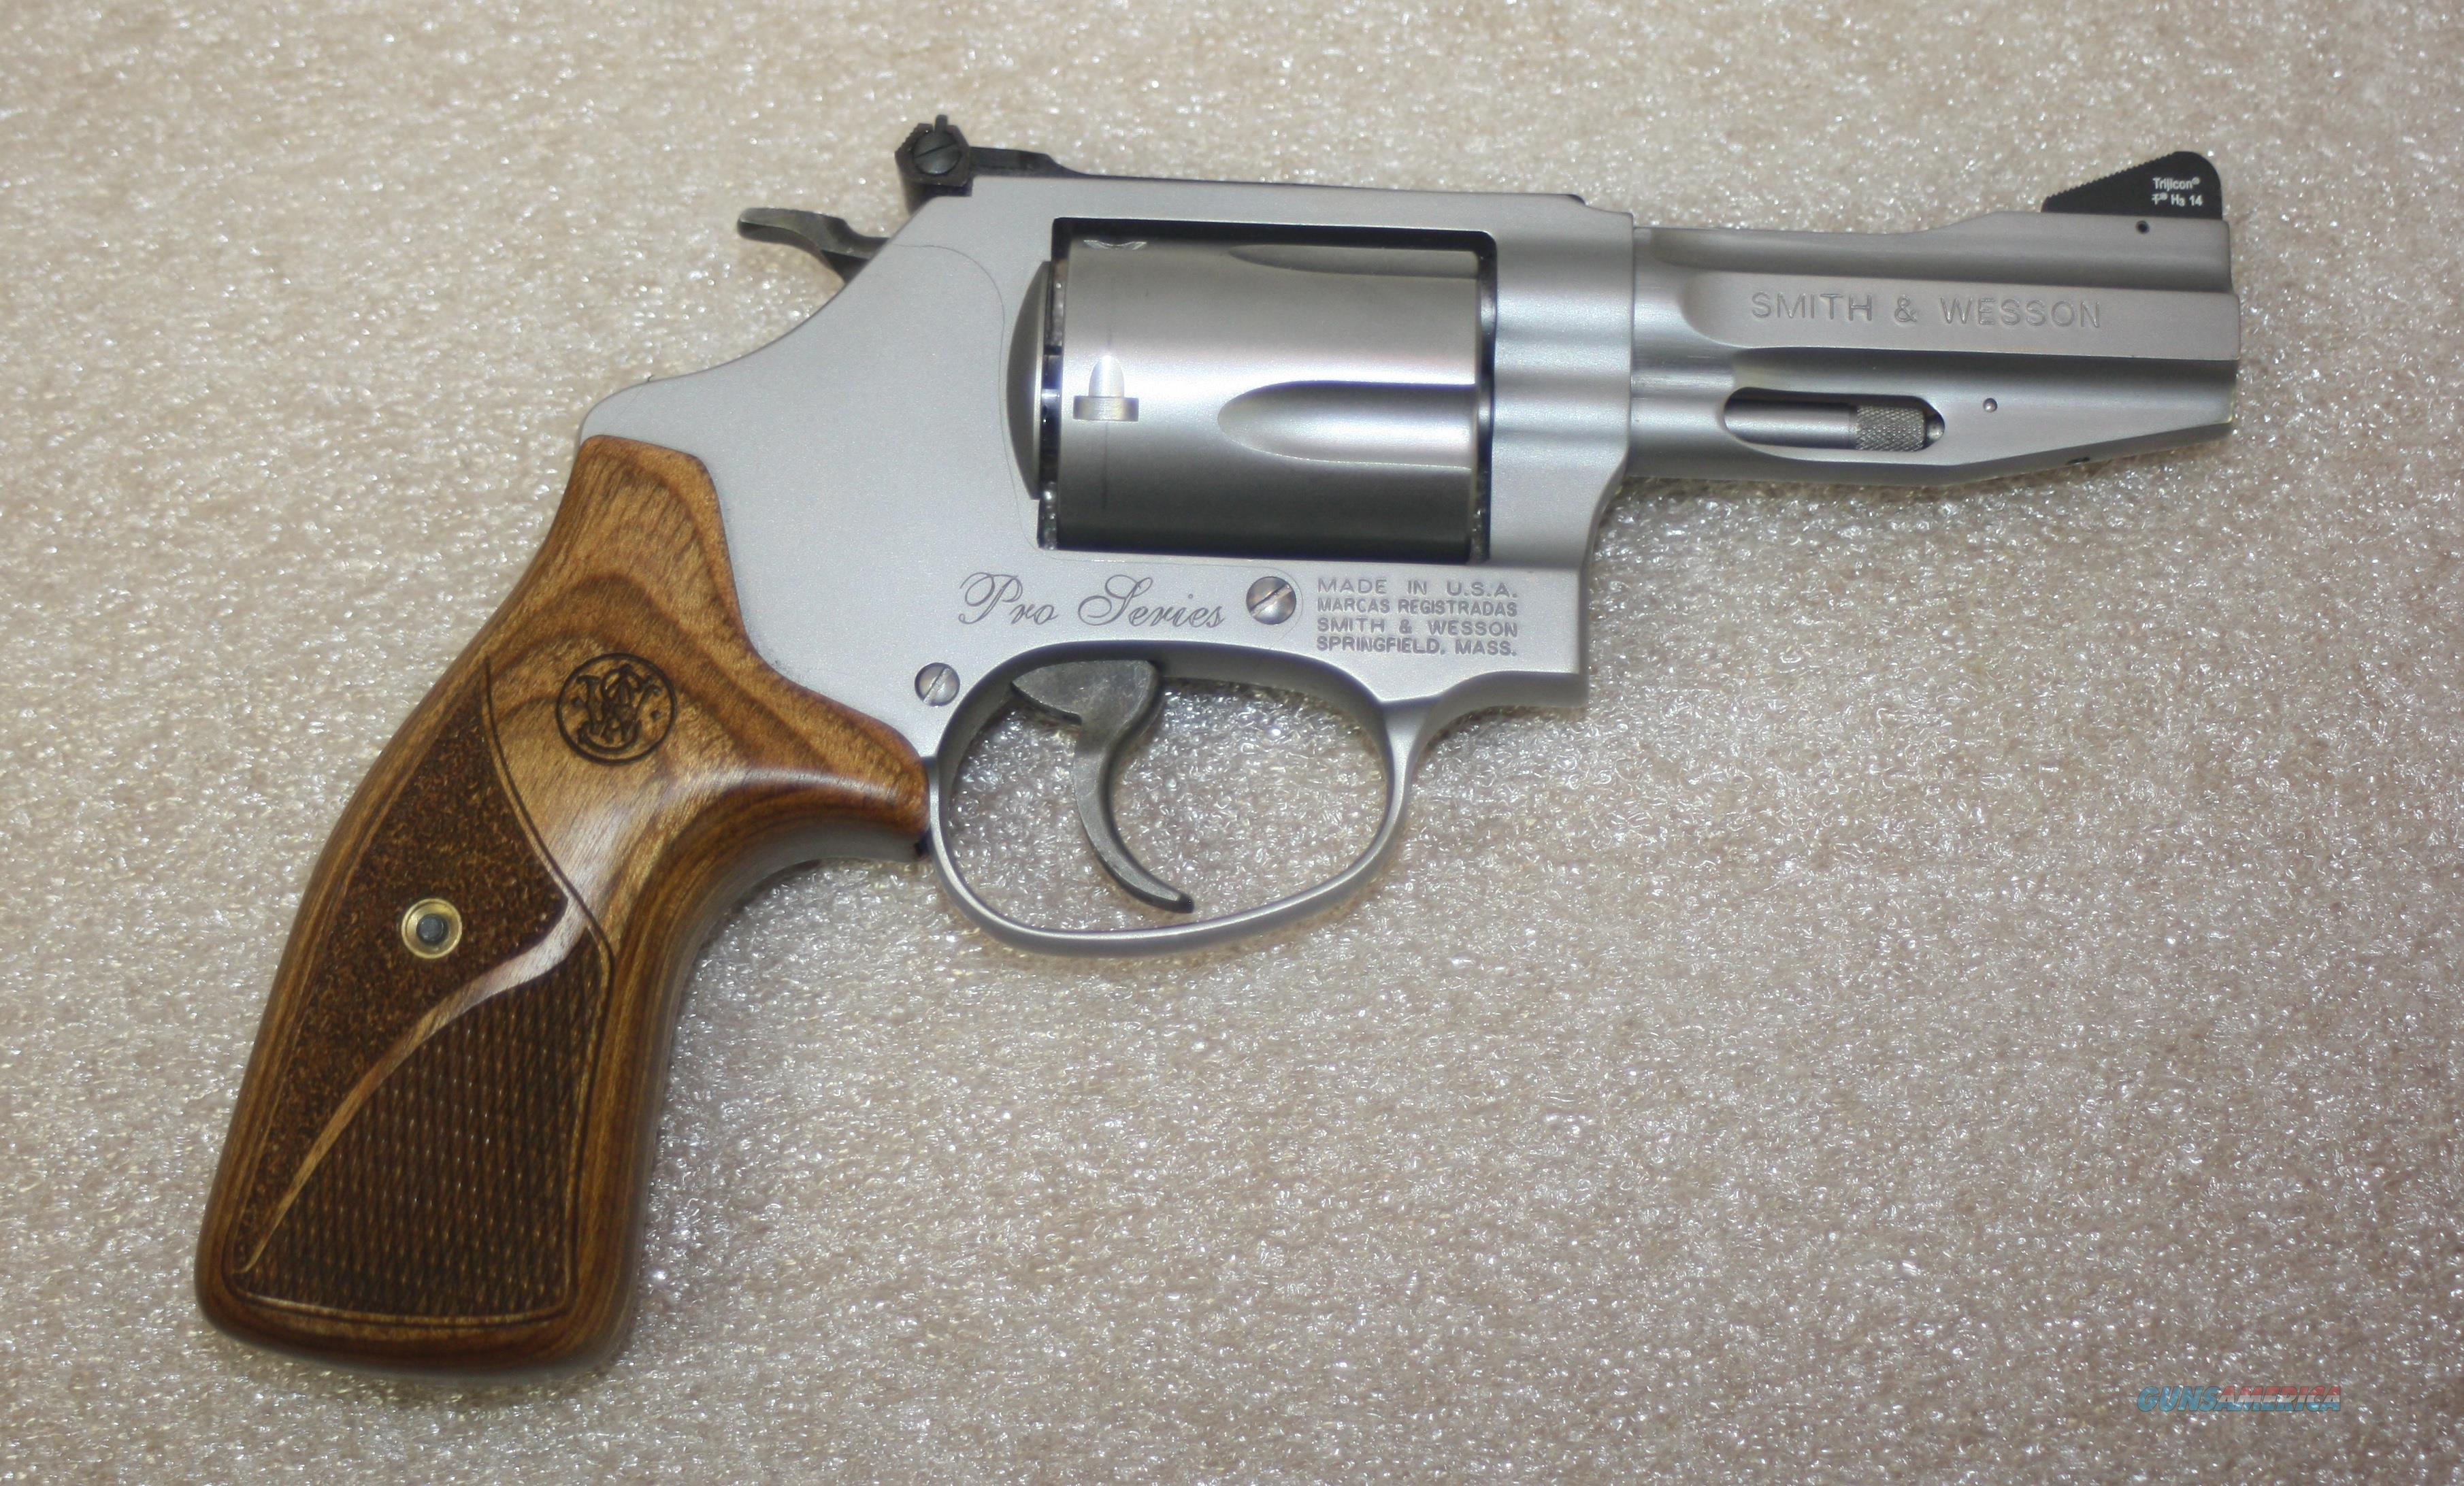 "SMITH & WESSON PRO SERIES M60 3"" 357 MAG LIKE NEW IN ORIGINAL BOX  Guns > Pistols > Smith & Wesson Revolvers > Pocket Pistols"